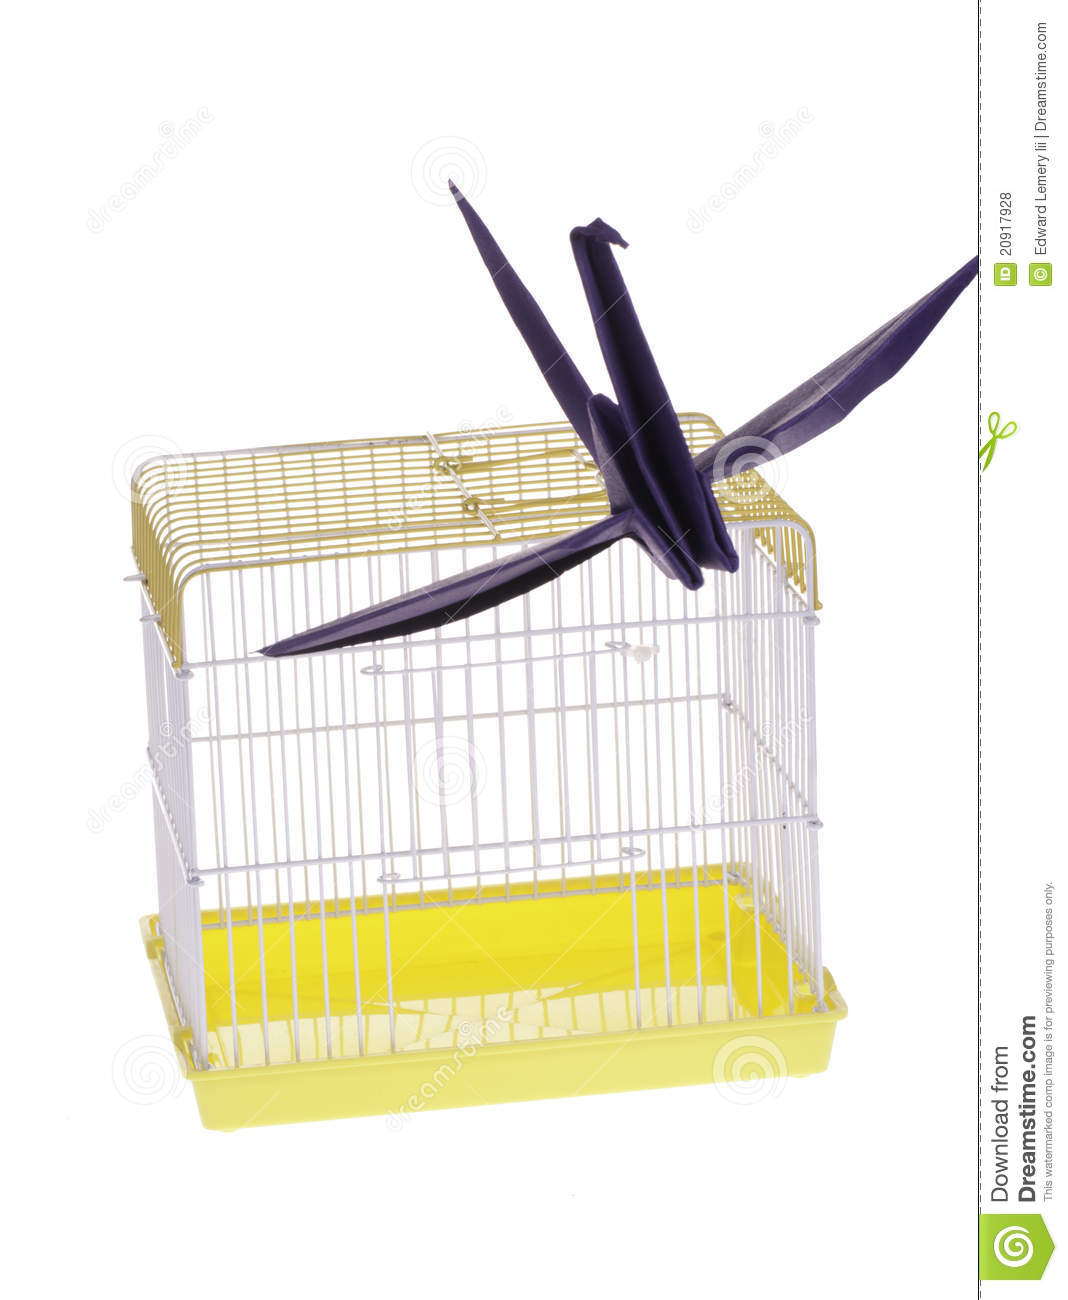 More similar stock images of   Bird escape from cage  Bird Freedom From Cage